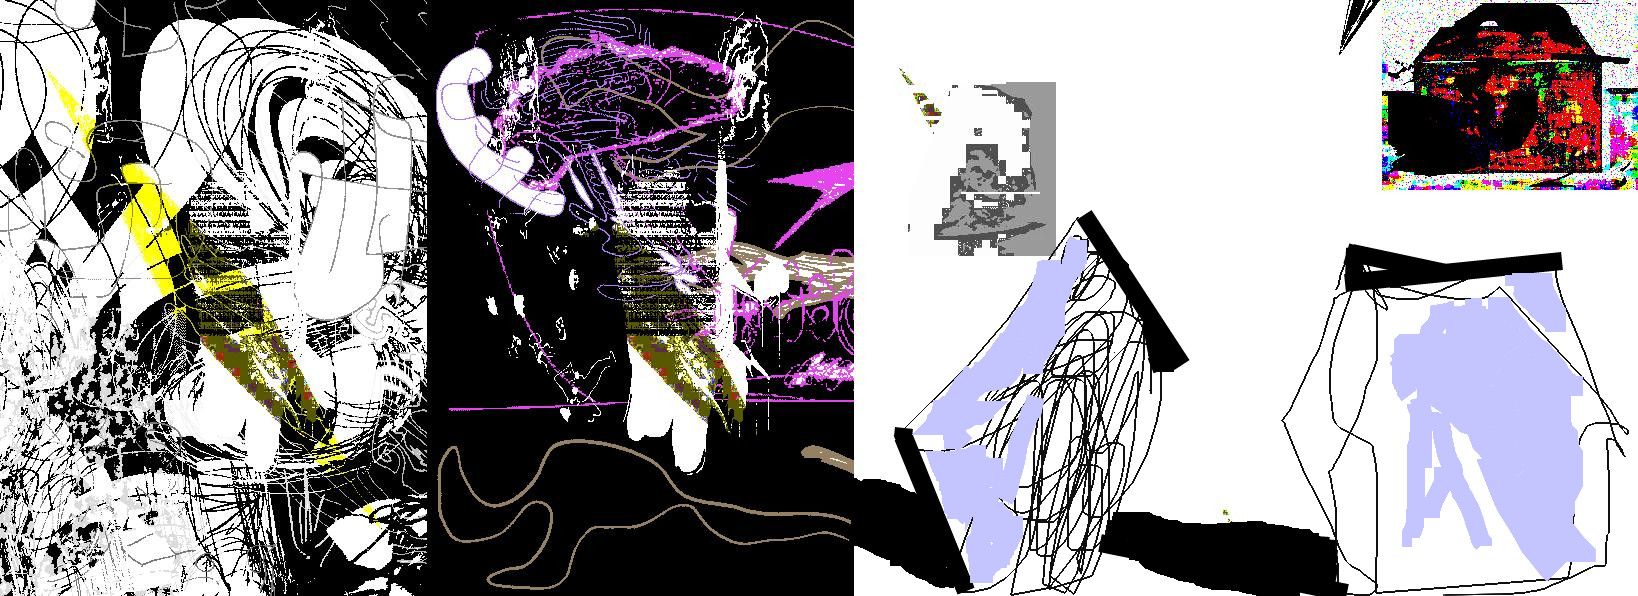 corpse,_space,_beauty,_defacement,_standing_(two_bags)--16535-20344-12713-94660-2256.jpg